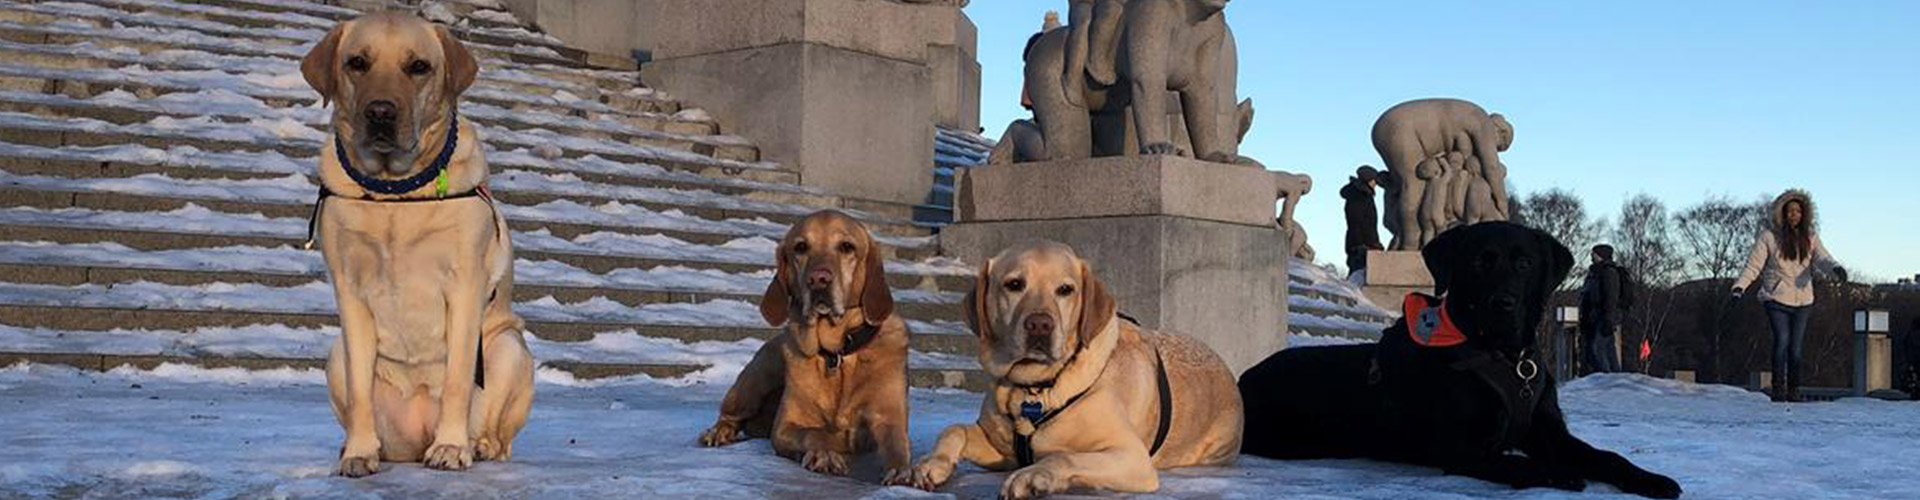 4 Service dogs resting in the park